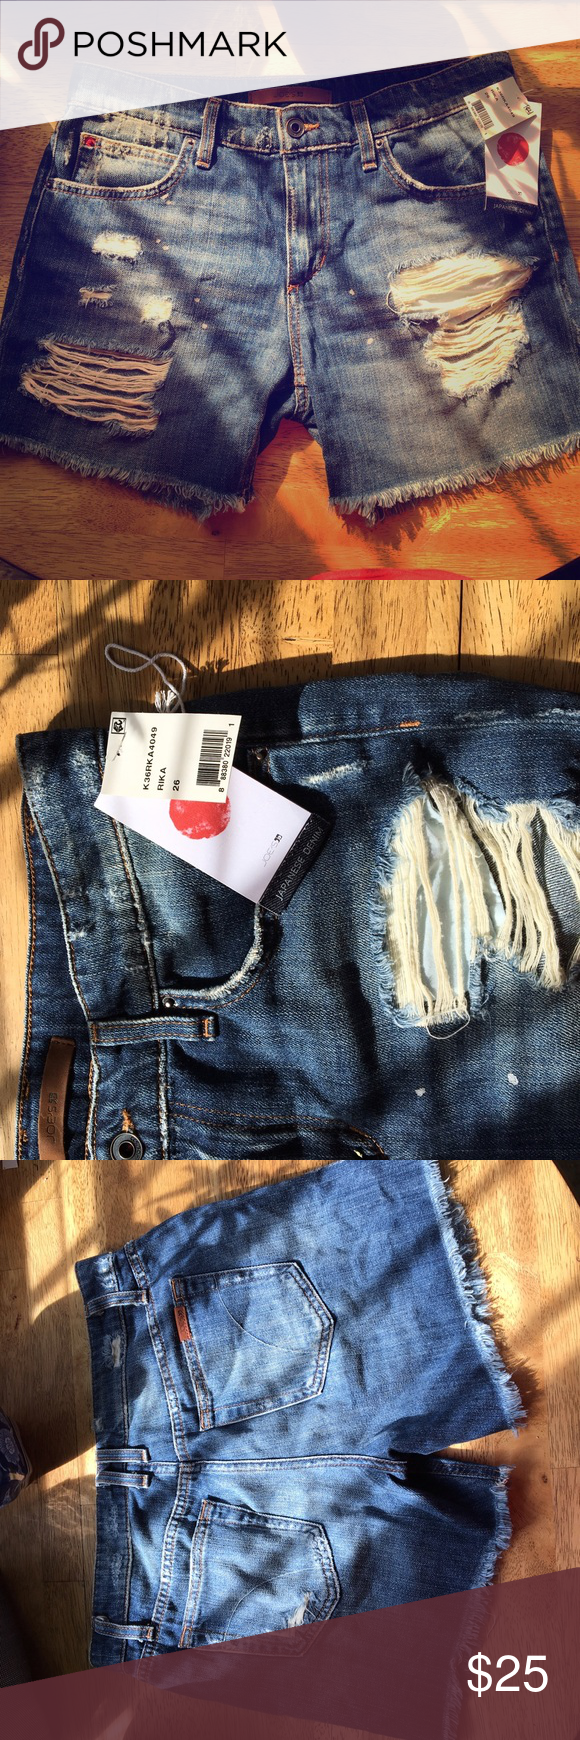 Joe's Jeans Denim Shorts Brand new Joe's Jeans Distressed Denim shorts. Fits 26-27 Joe's Jeans Shorts Jean Shorts